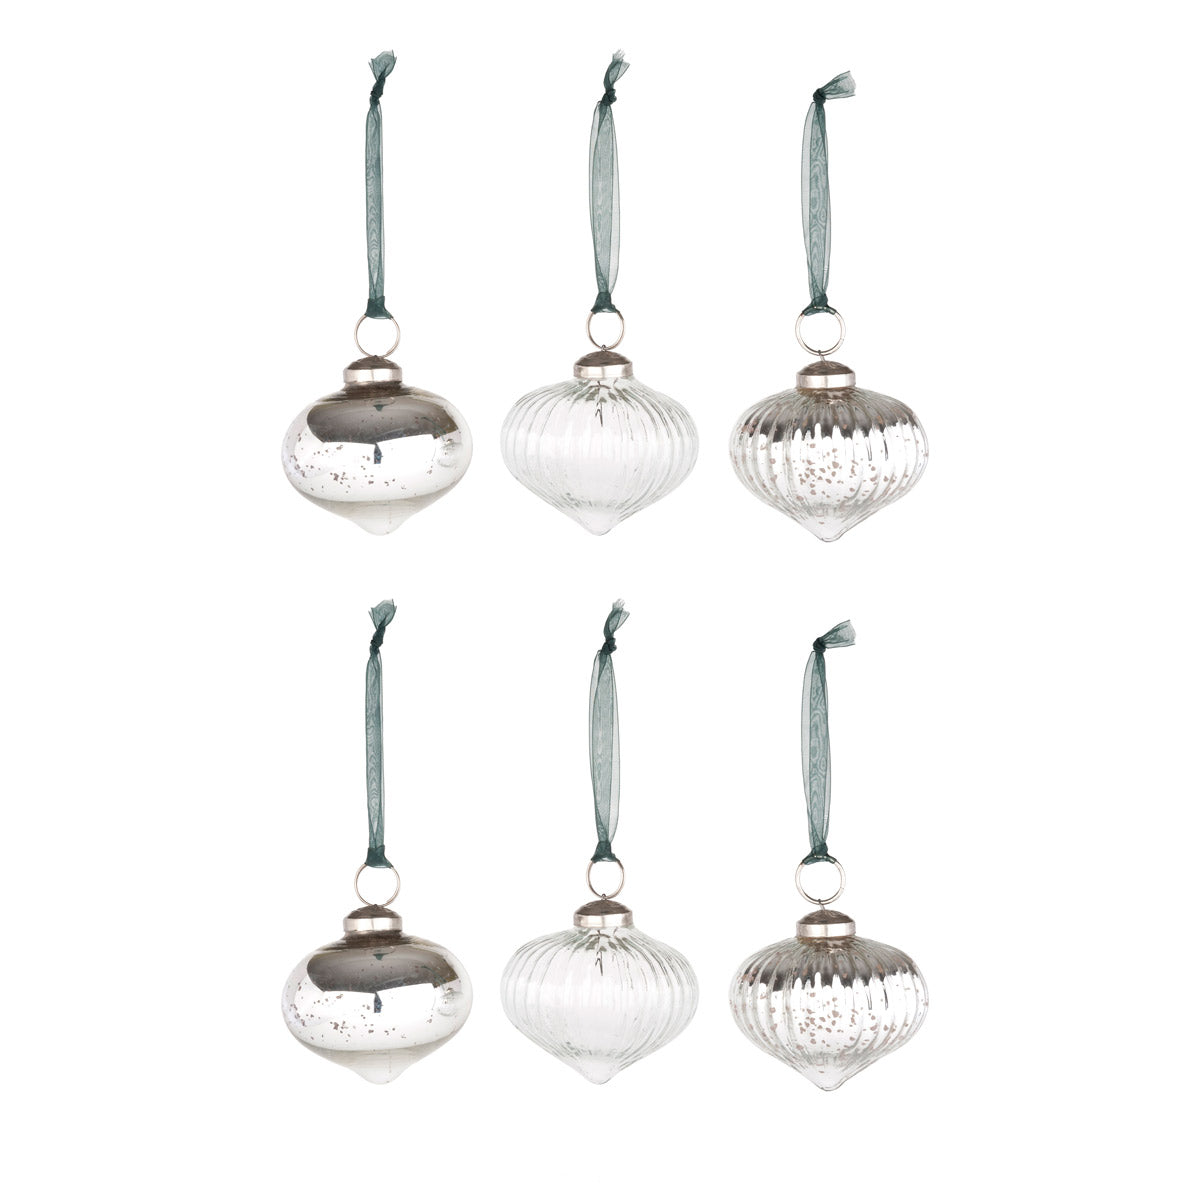 Onion Bauble Decoration - Set of 6